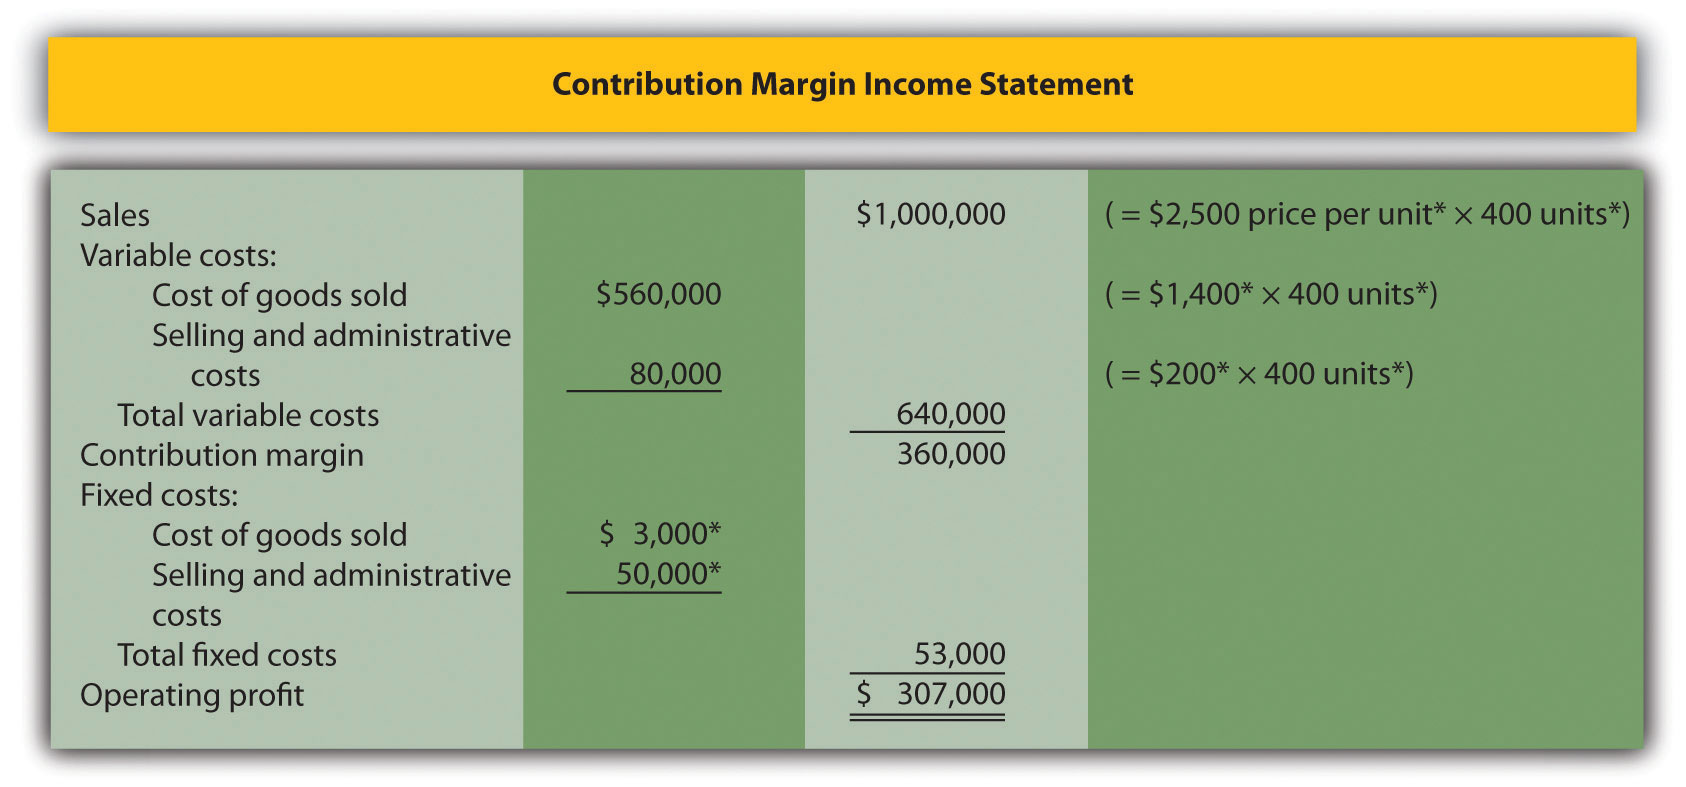 Contribution Income Statement | The Contribution Margin Income Statement